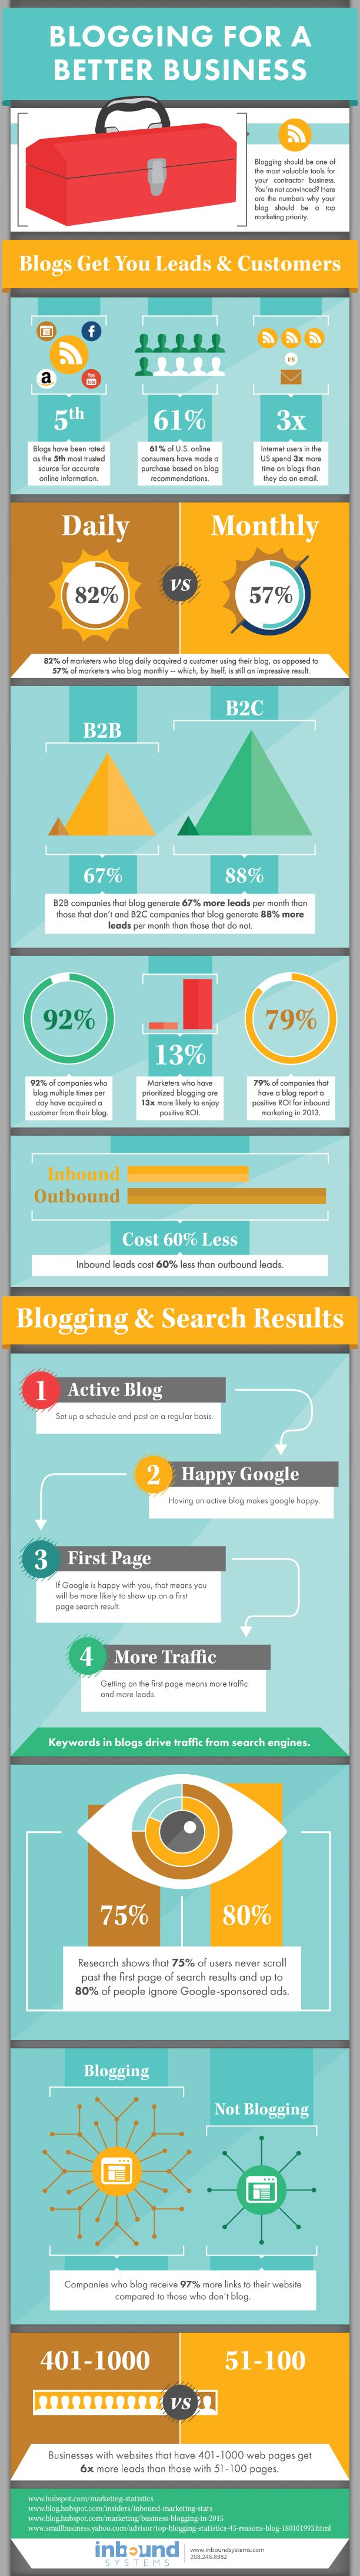 15 Stats That Show Why Blogging Should Be Your Top Marketing Priority - @redwebdesign